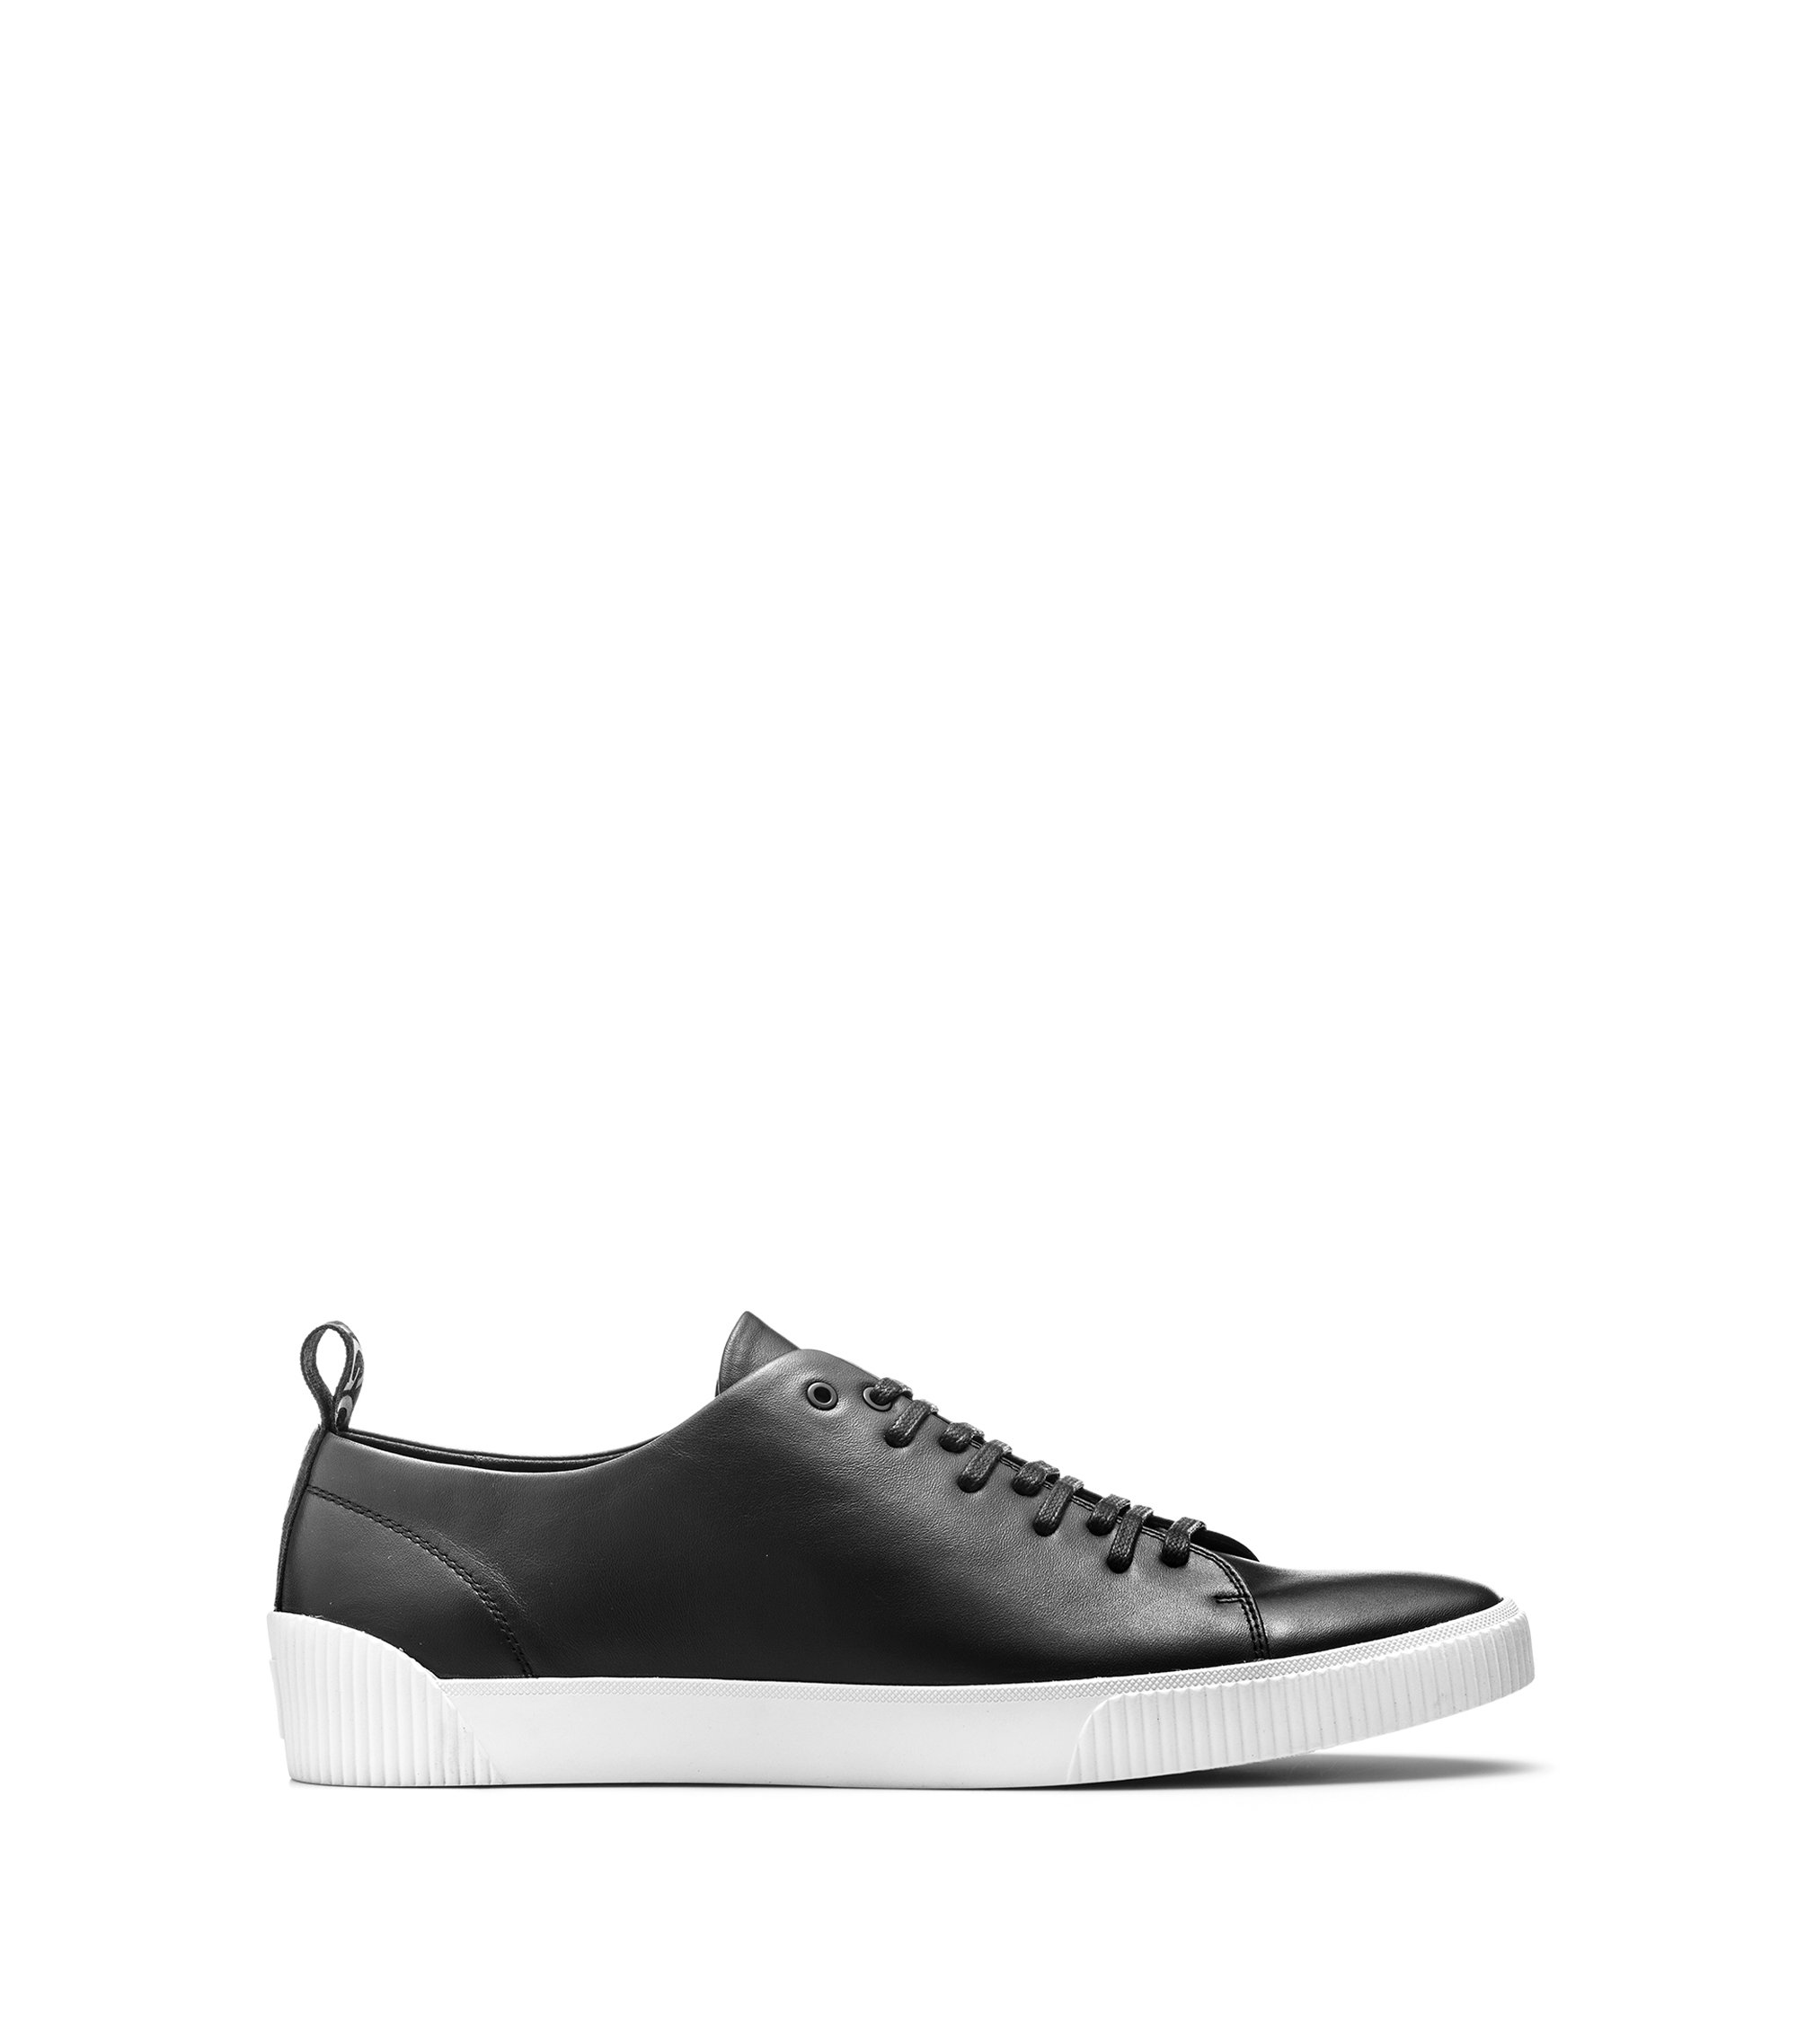 Sneakers low-top in pelle nappa con logo, Nero